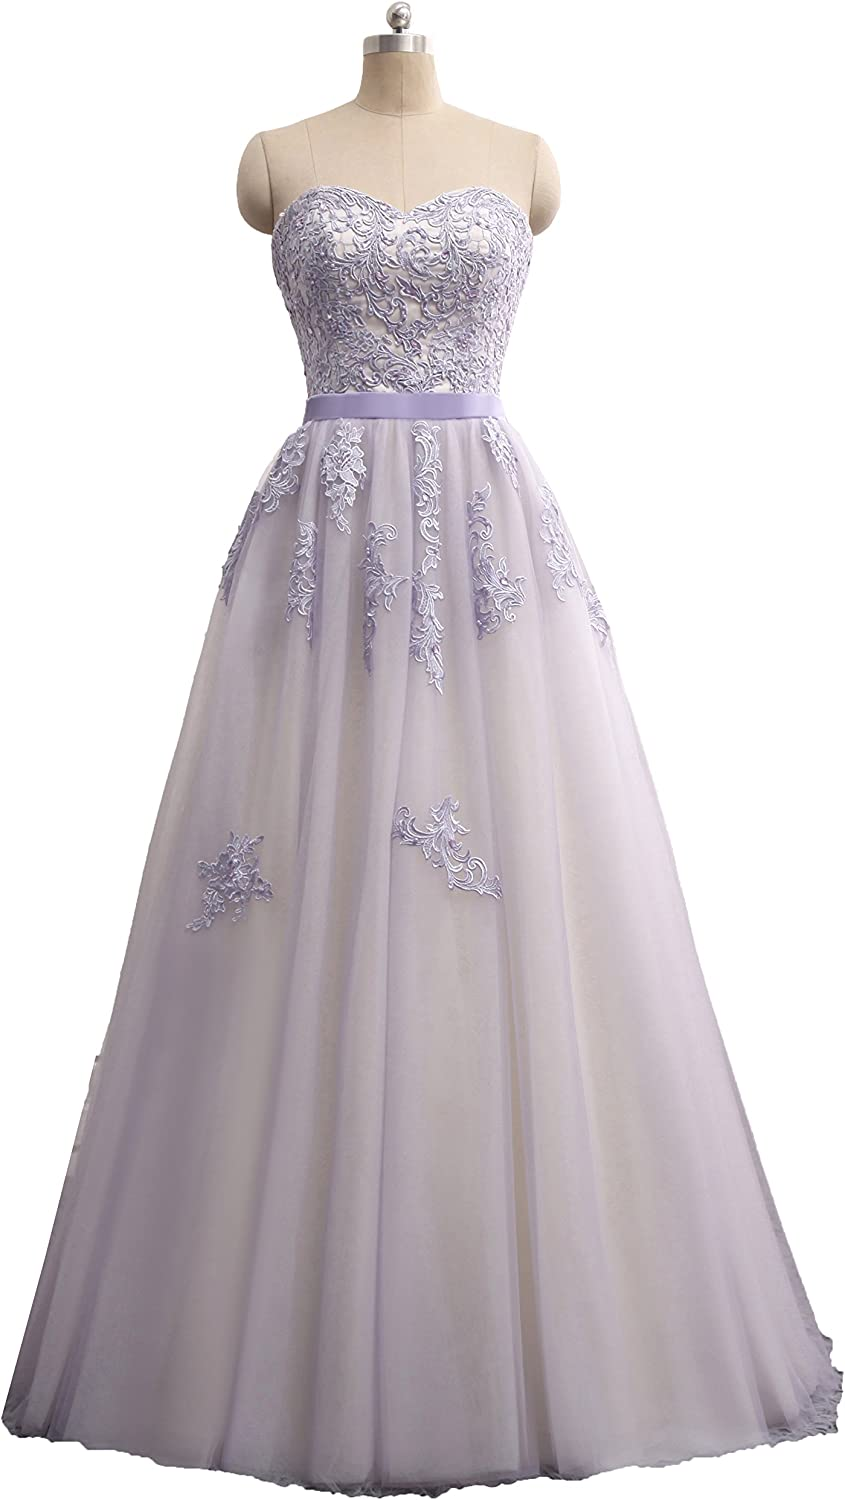 Onlybridal Women's Appliques Long Tulle Bridal Dresses Beaded Evening Gowns